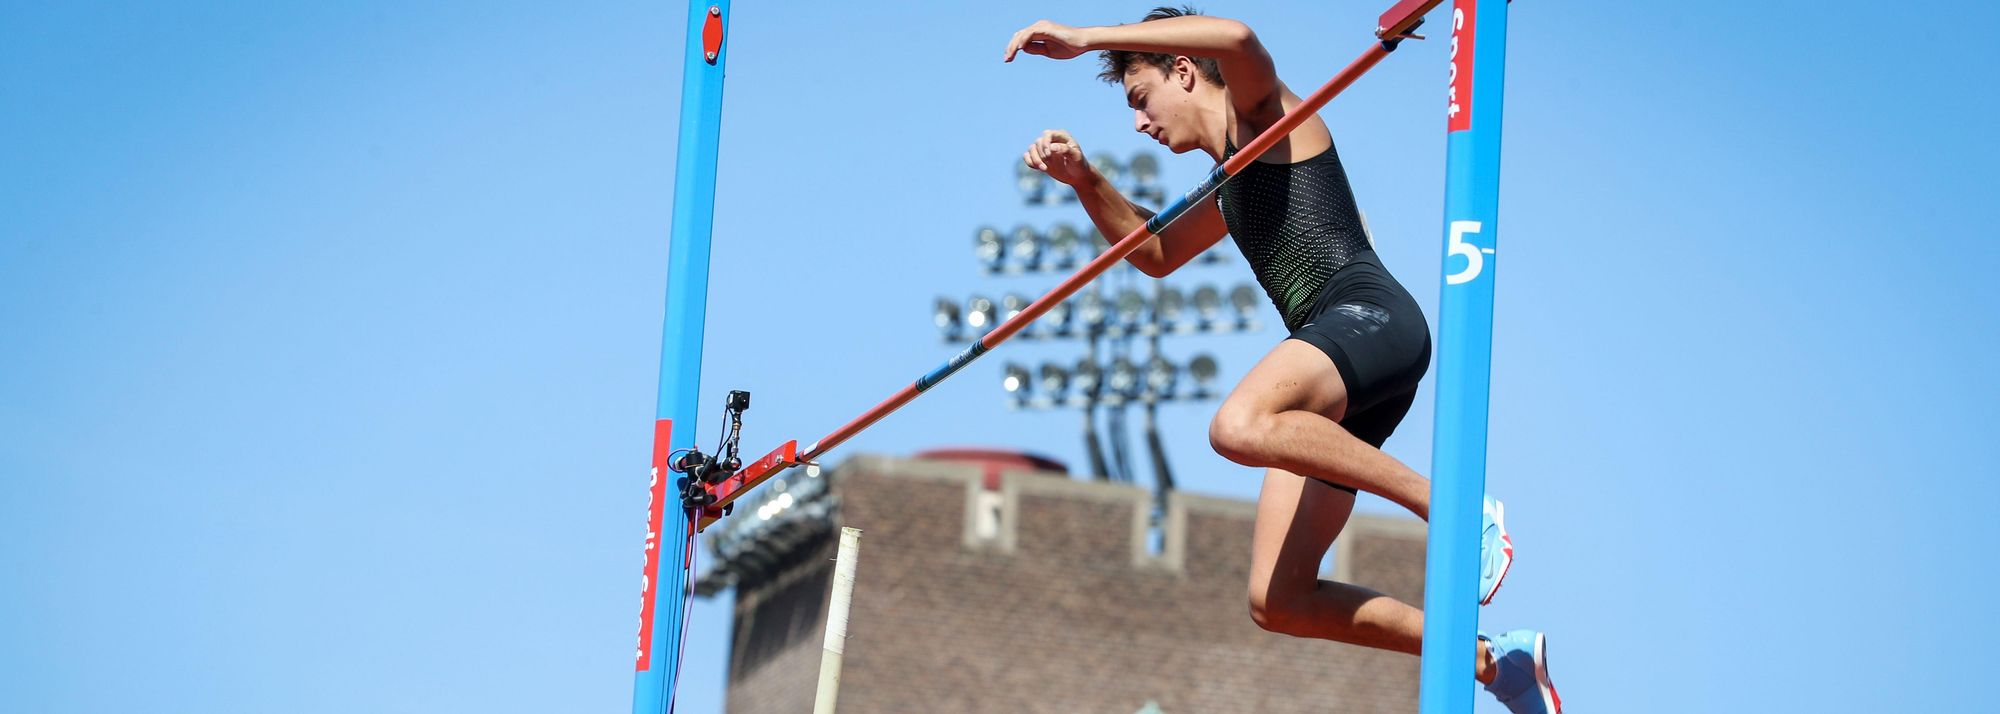 The best pole vaulters in the world are set to gather in Scandinavia for back-to-back clashes in the Wanda Diamond League next month.